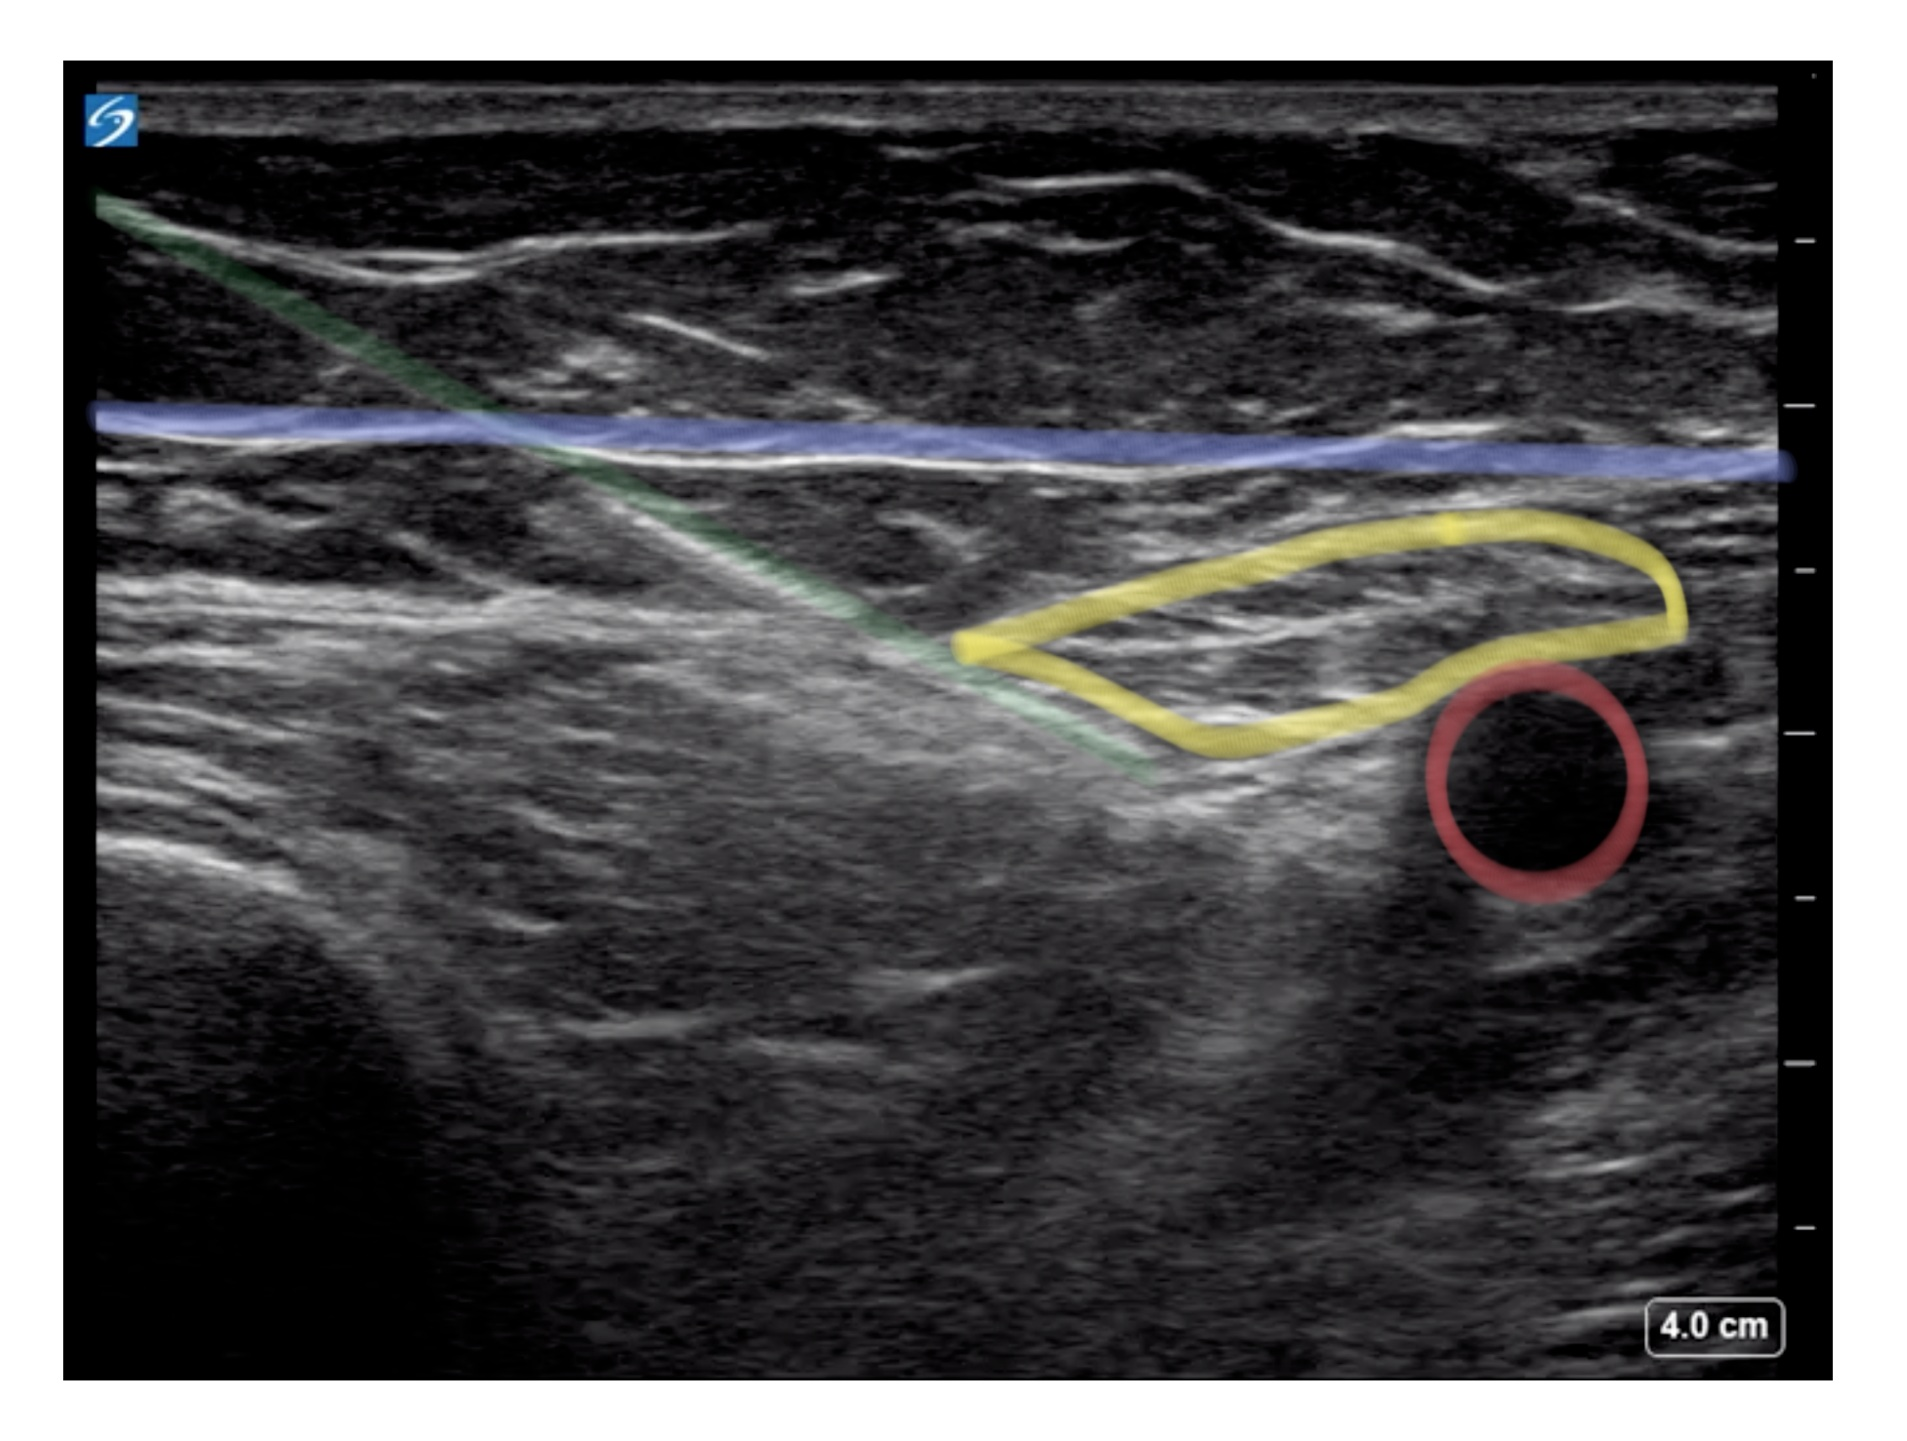 In-plane view of the FNB/FIB. The needle (green) is traversing the fascia iliaca (purple). The femoral nerve (yellow) is a triangular structure just lateral to the femoral artery (red).